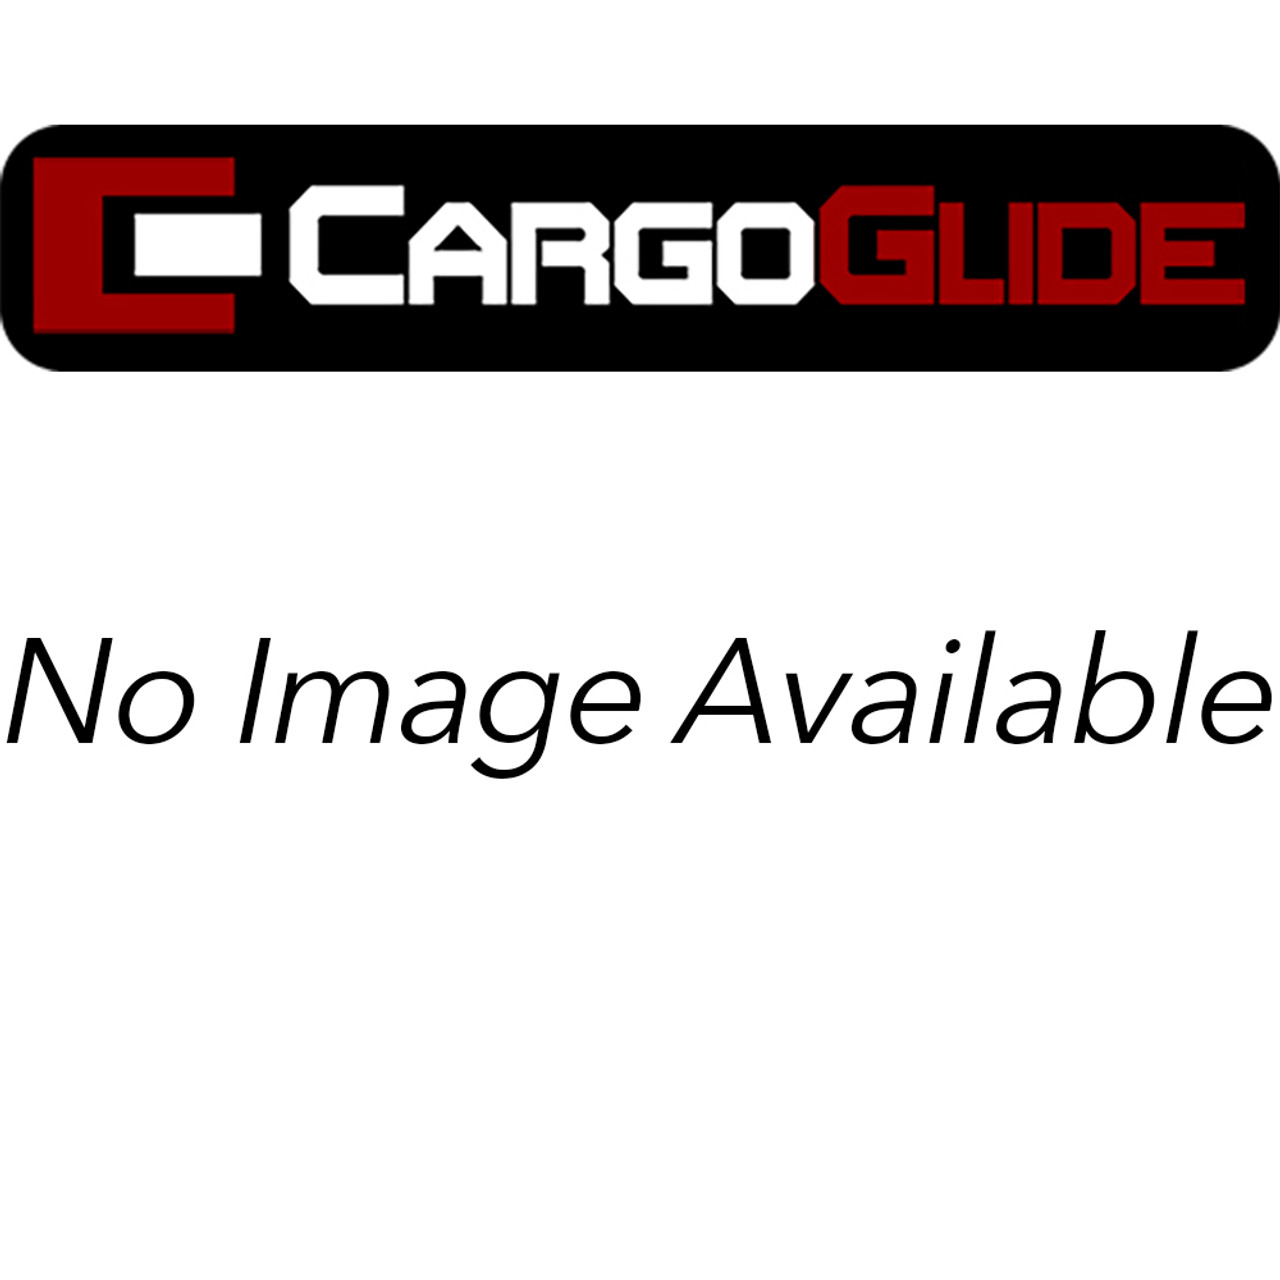 CargoGlide CGHTADJ CG1000, CG1200, CG1500 Height Adjusters, CargoGlide Accessory